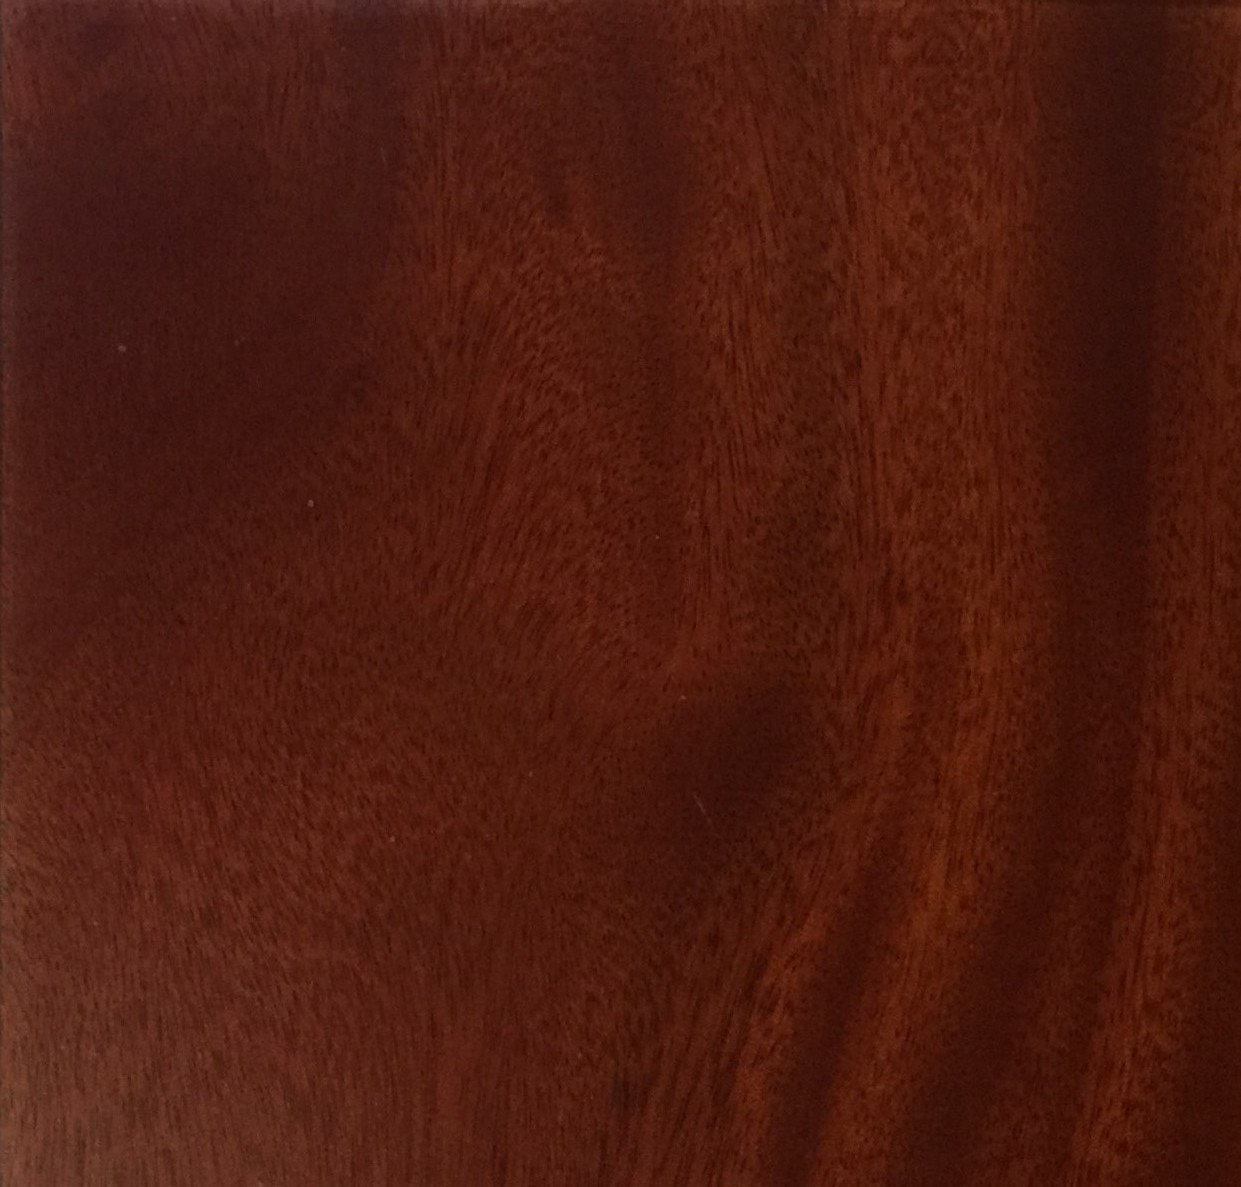 Asian Mahogany